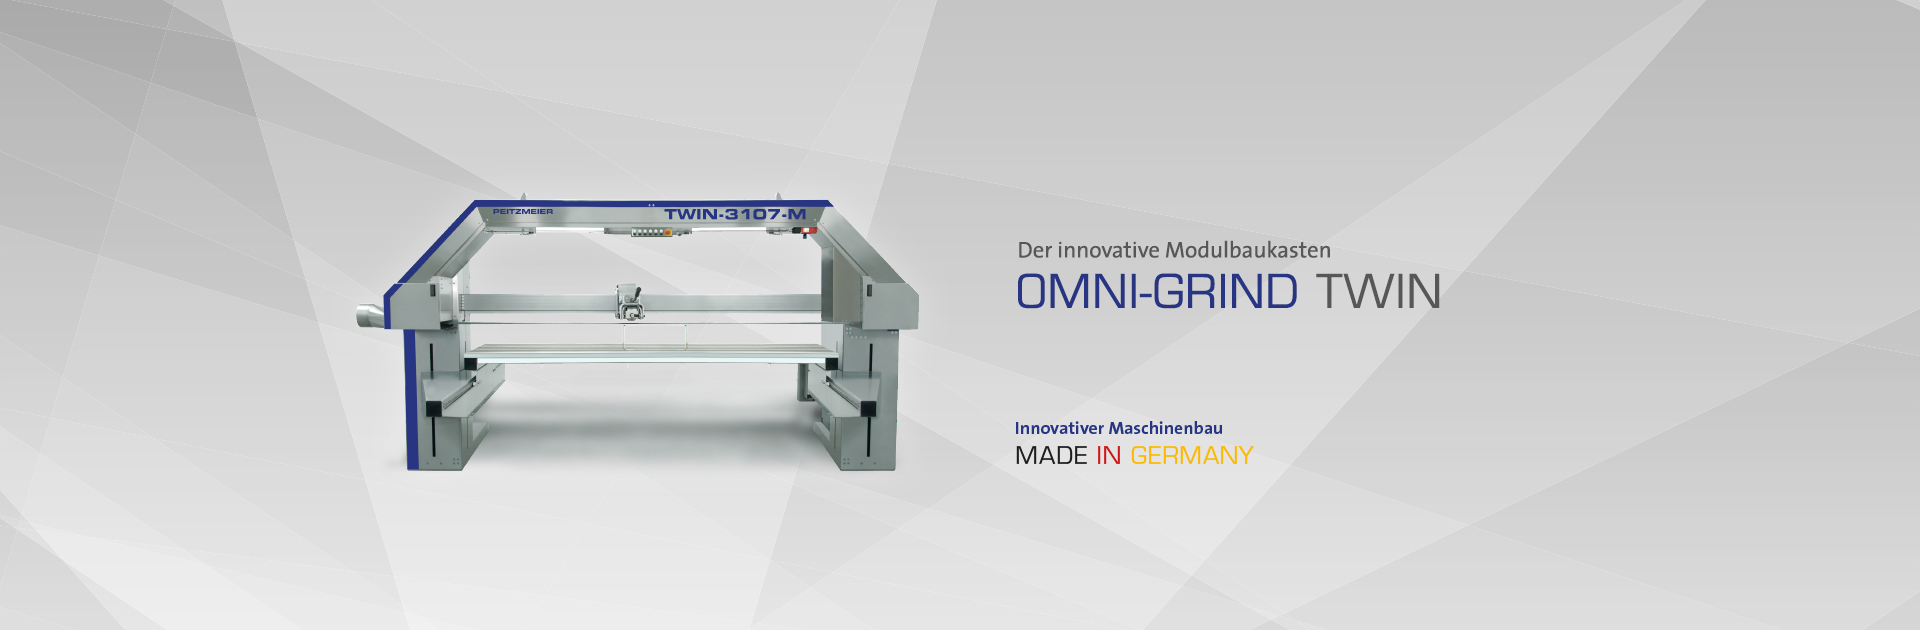 OMNI-GRIND TWIN - Der innovative Modulbaukasten